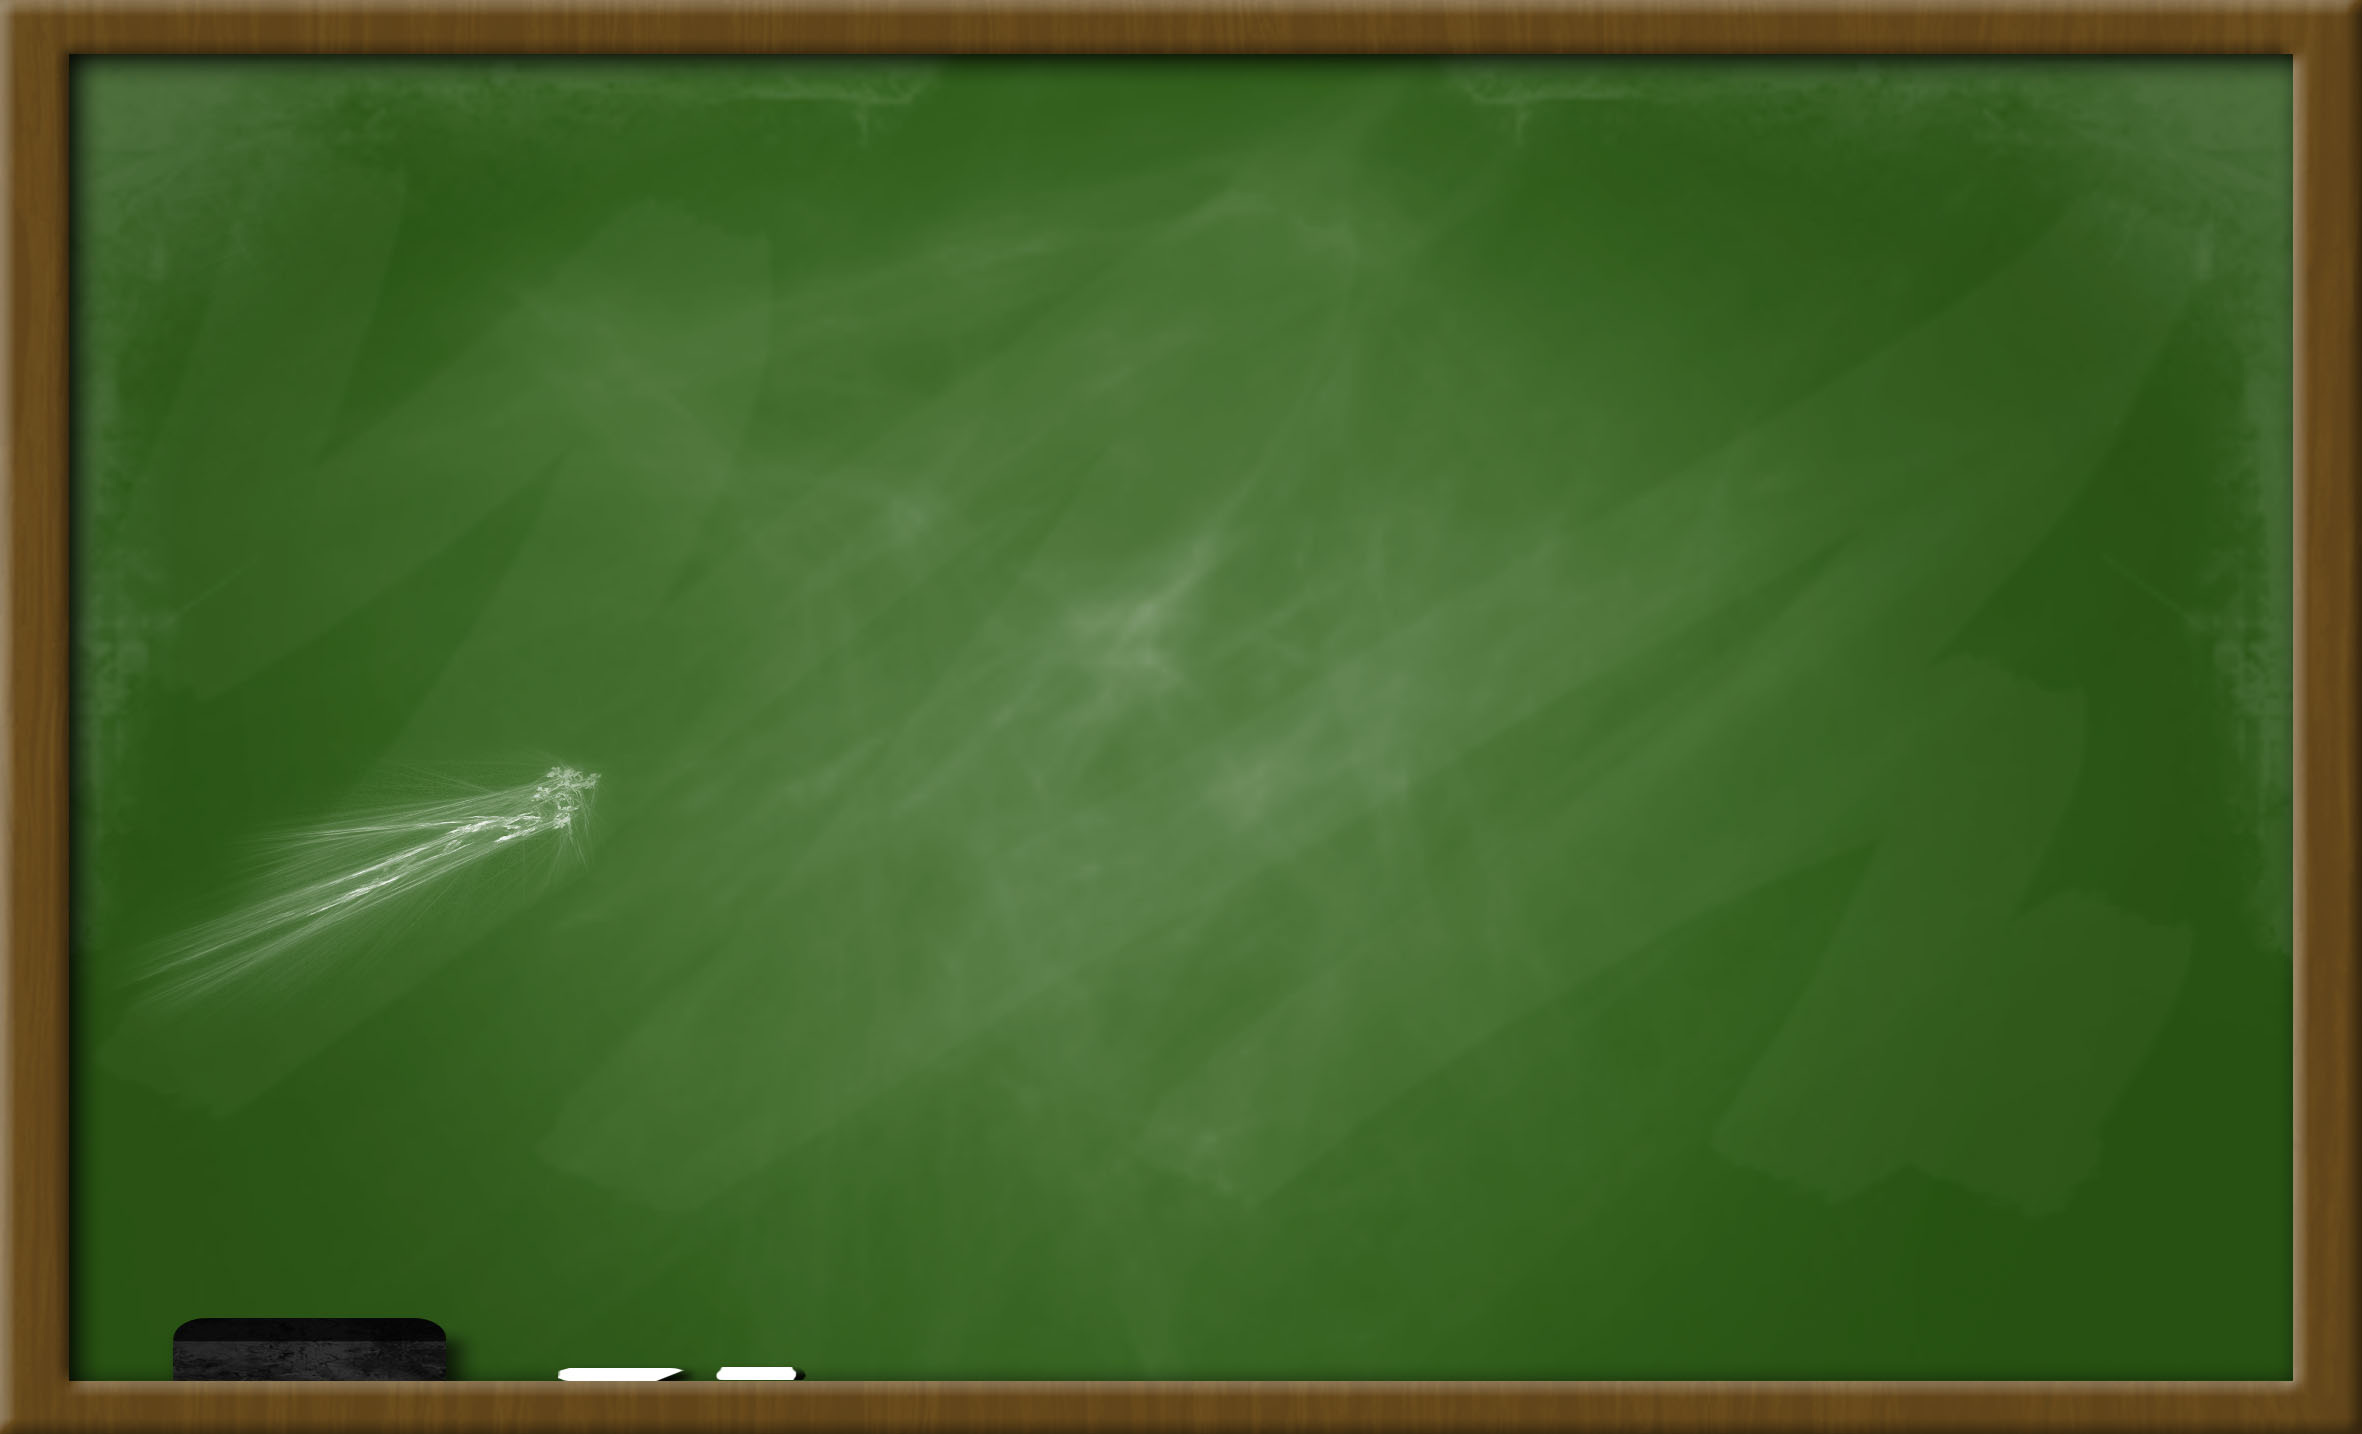 Free Chalkboard Background Png, Download Free Clip Art, Free Clip.